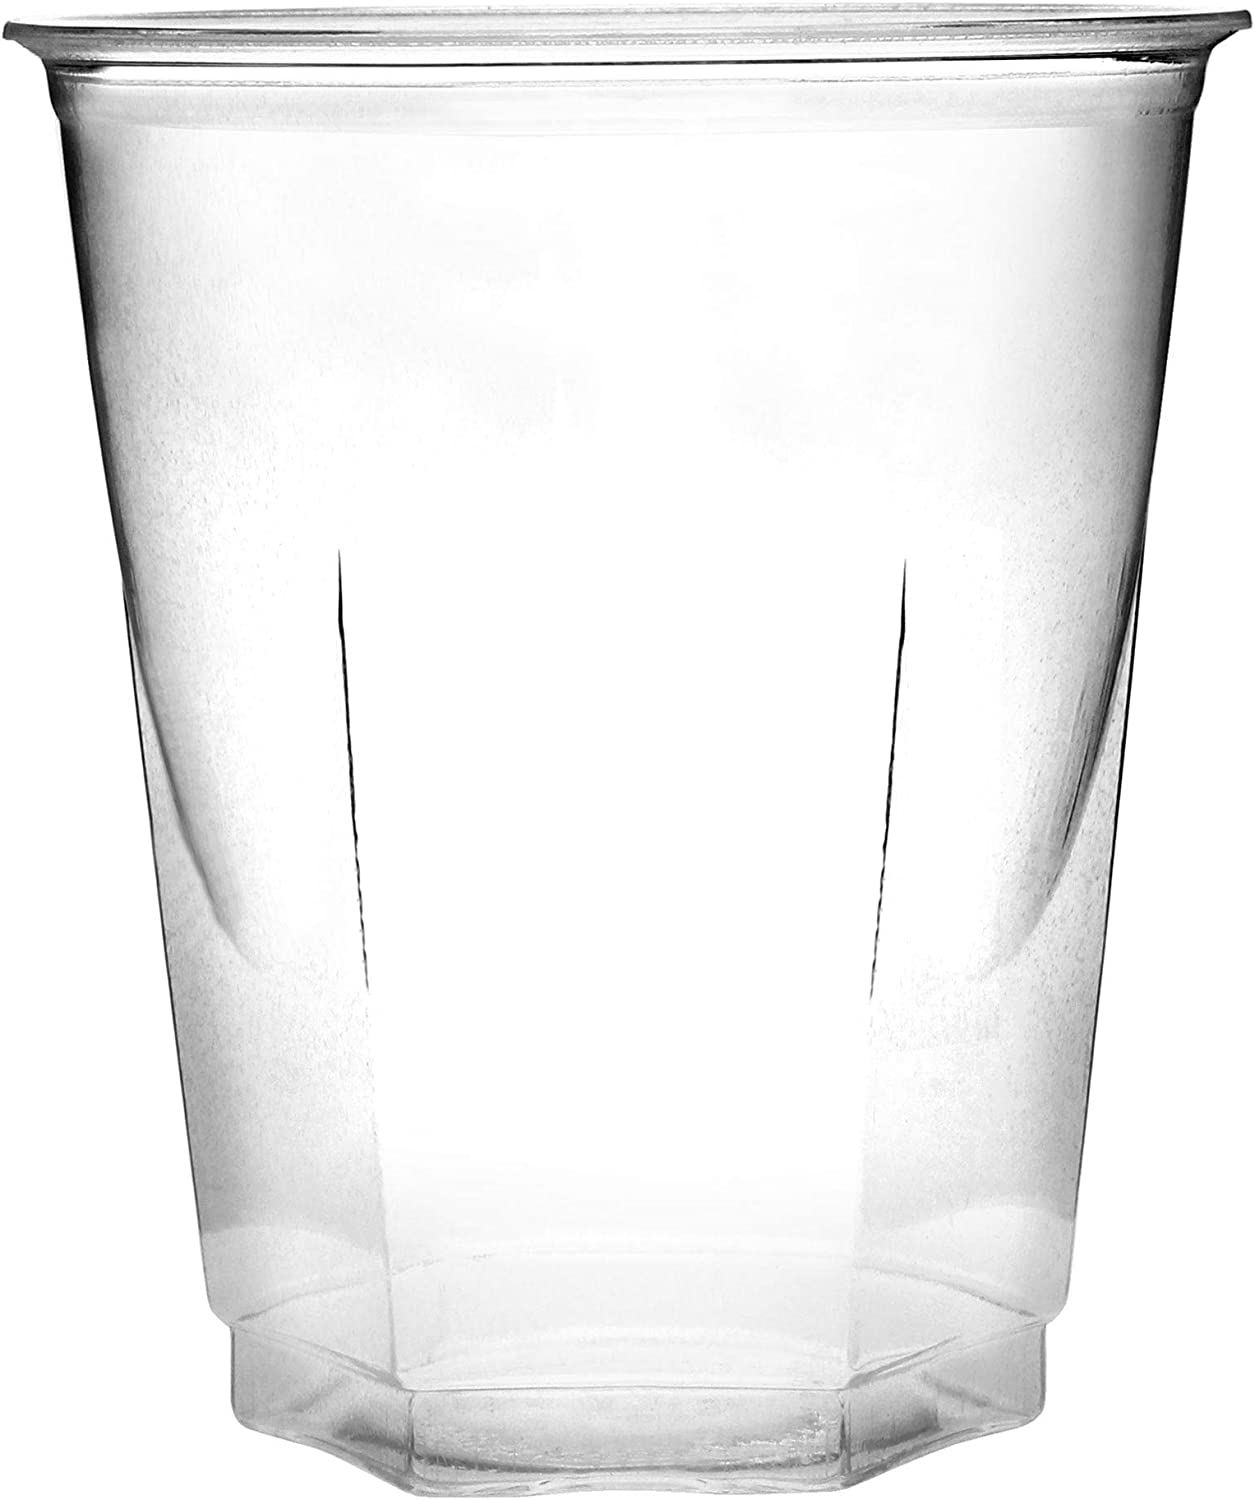 Pick d Pack - Vaso refresco glass ps 250 cc: Amazon.es: Hogar